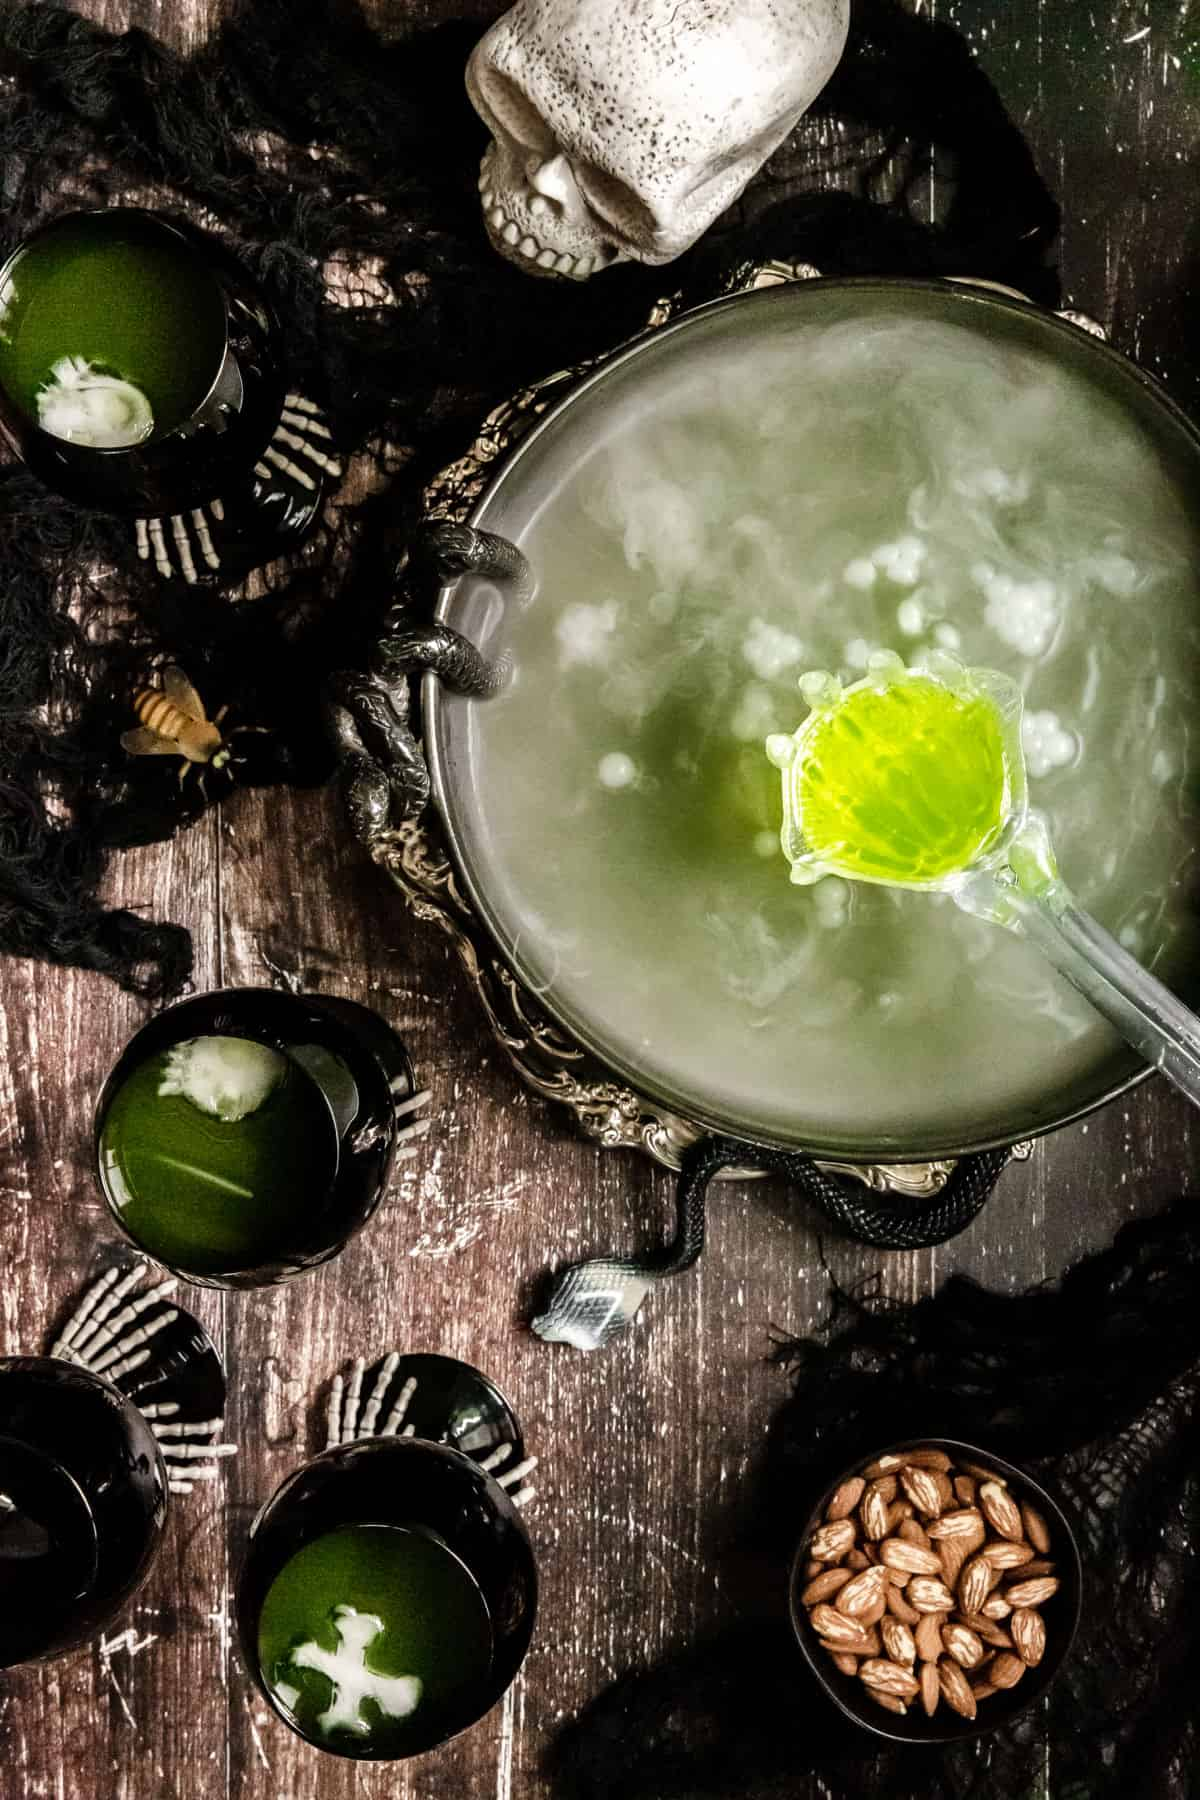 Halloween punch bowl scene with green punch, dry ice, glasses, skull, on wood table